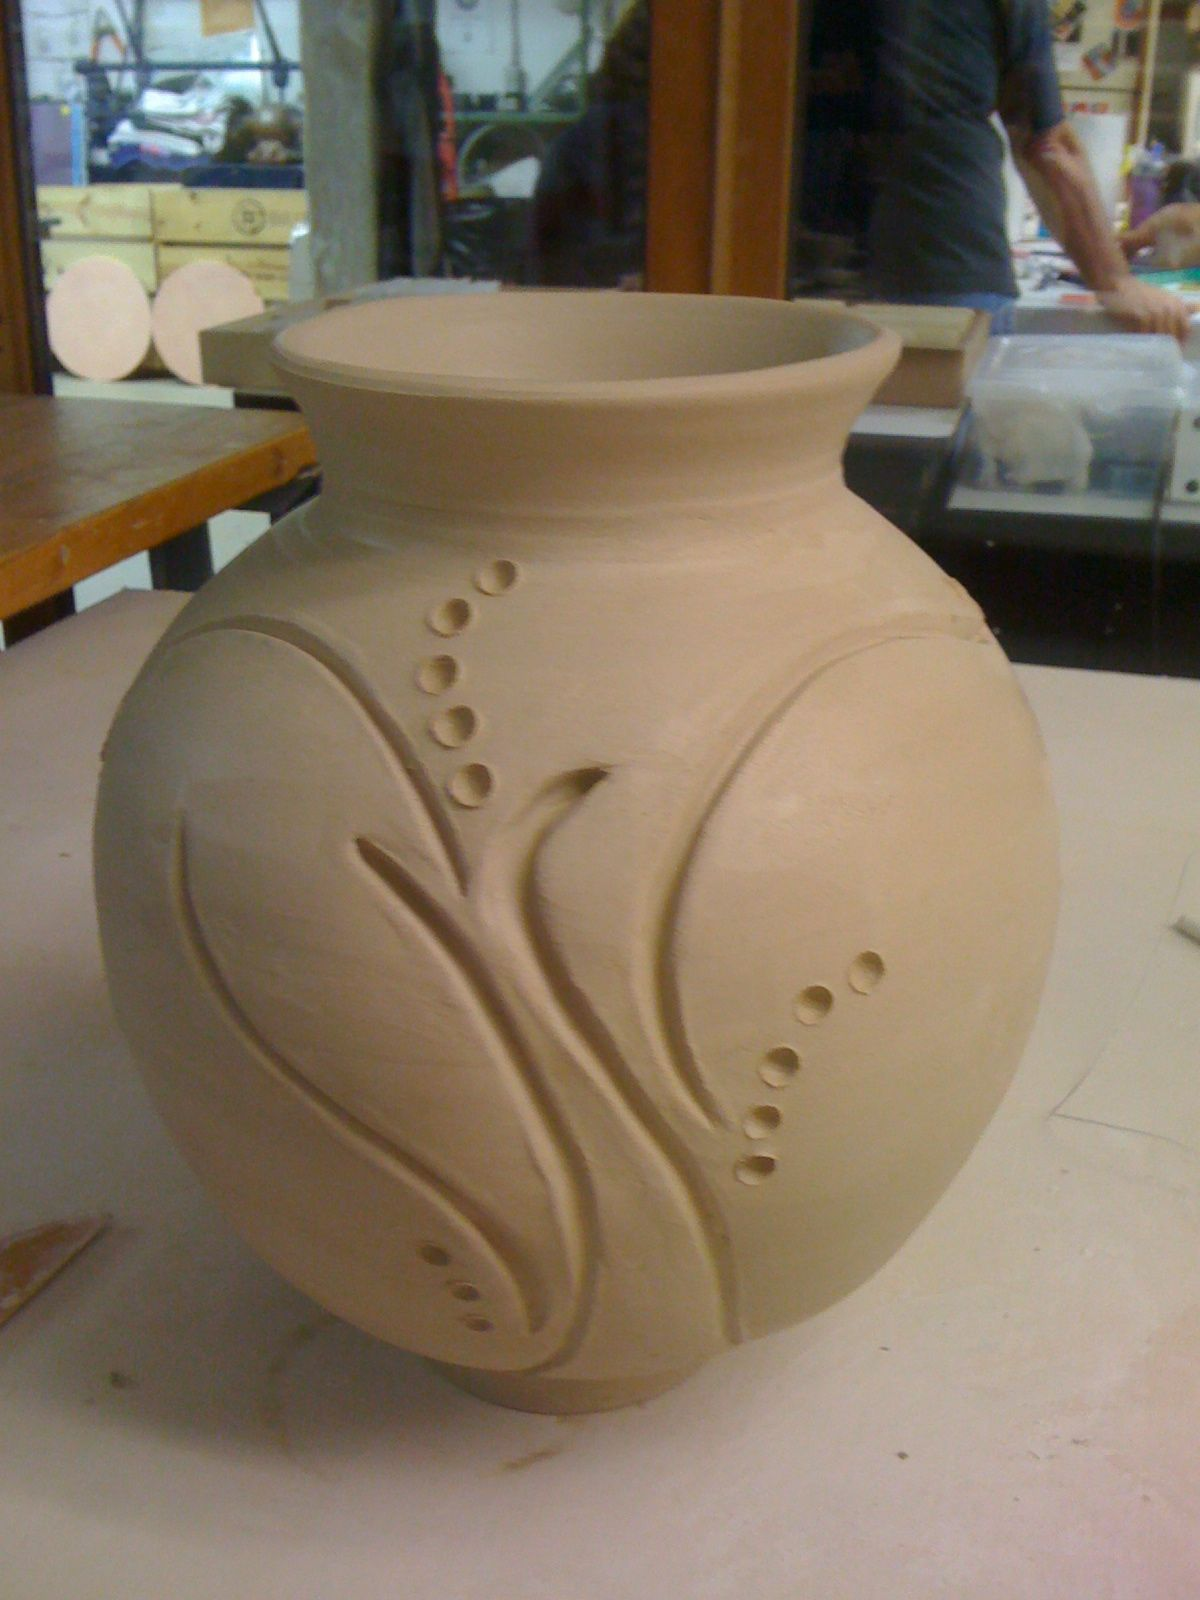 Clay coil pot designs google search clay models for Pottery designs with clay